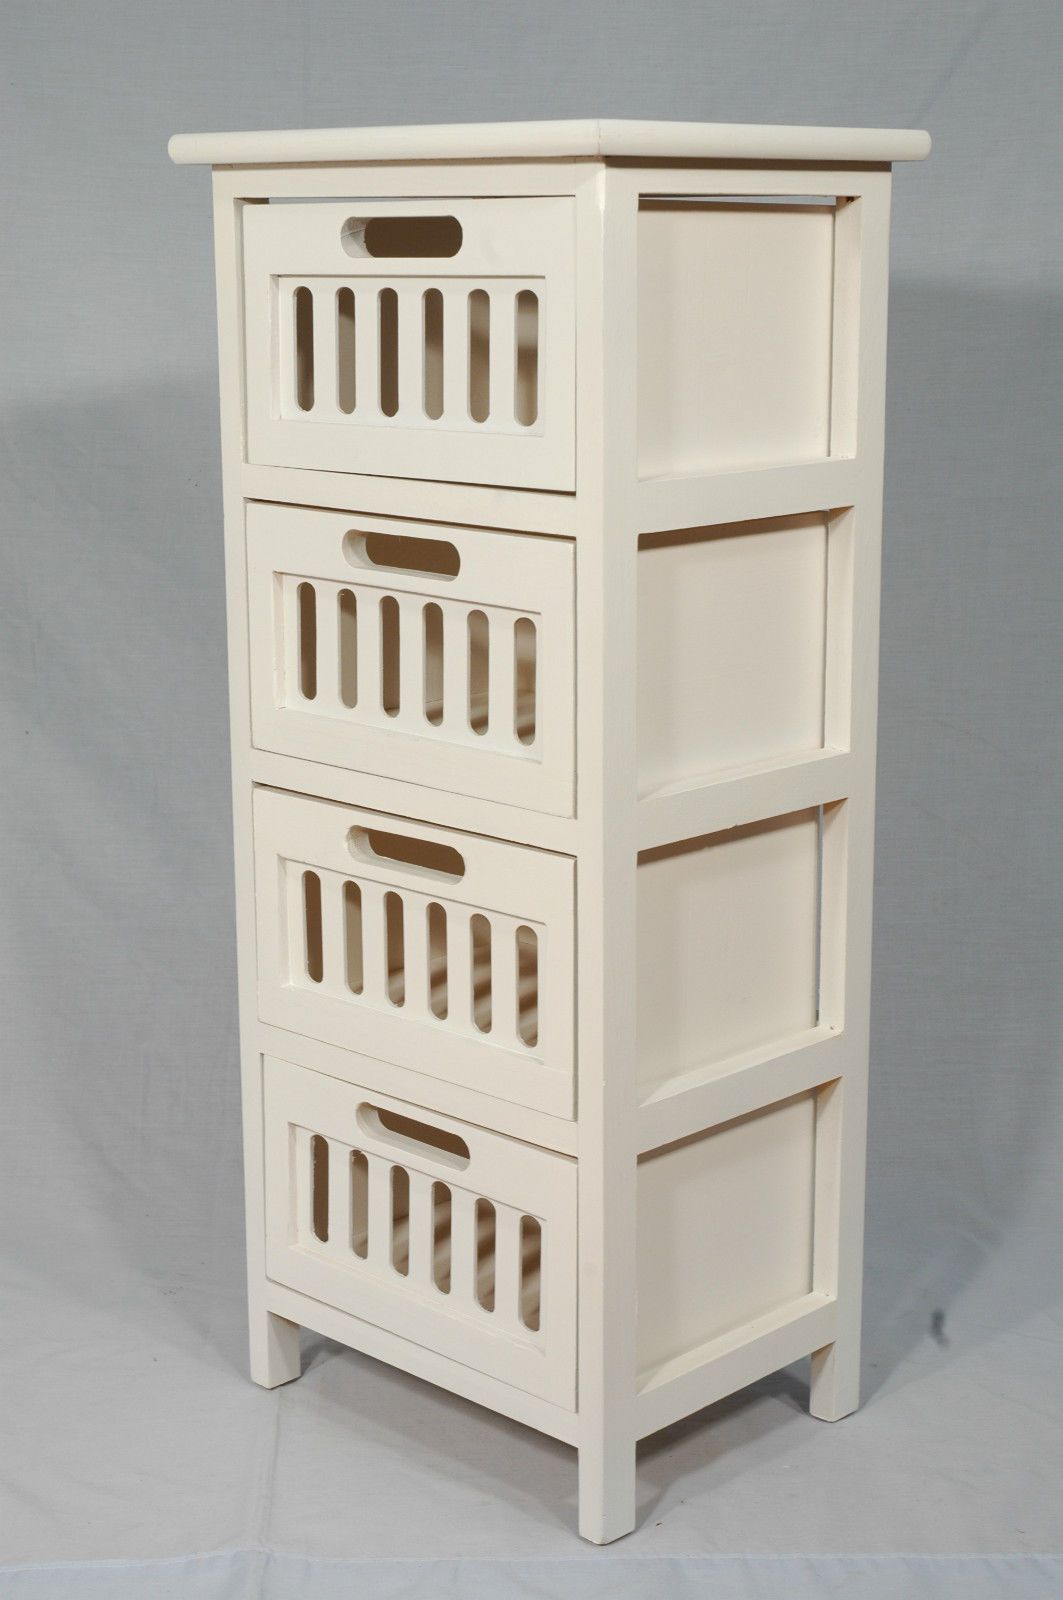 White timber storage cabinet side table stand shelf with slide out